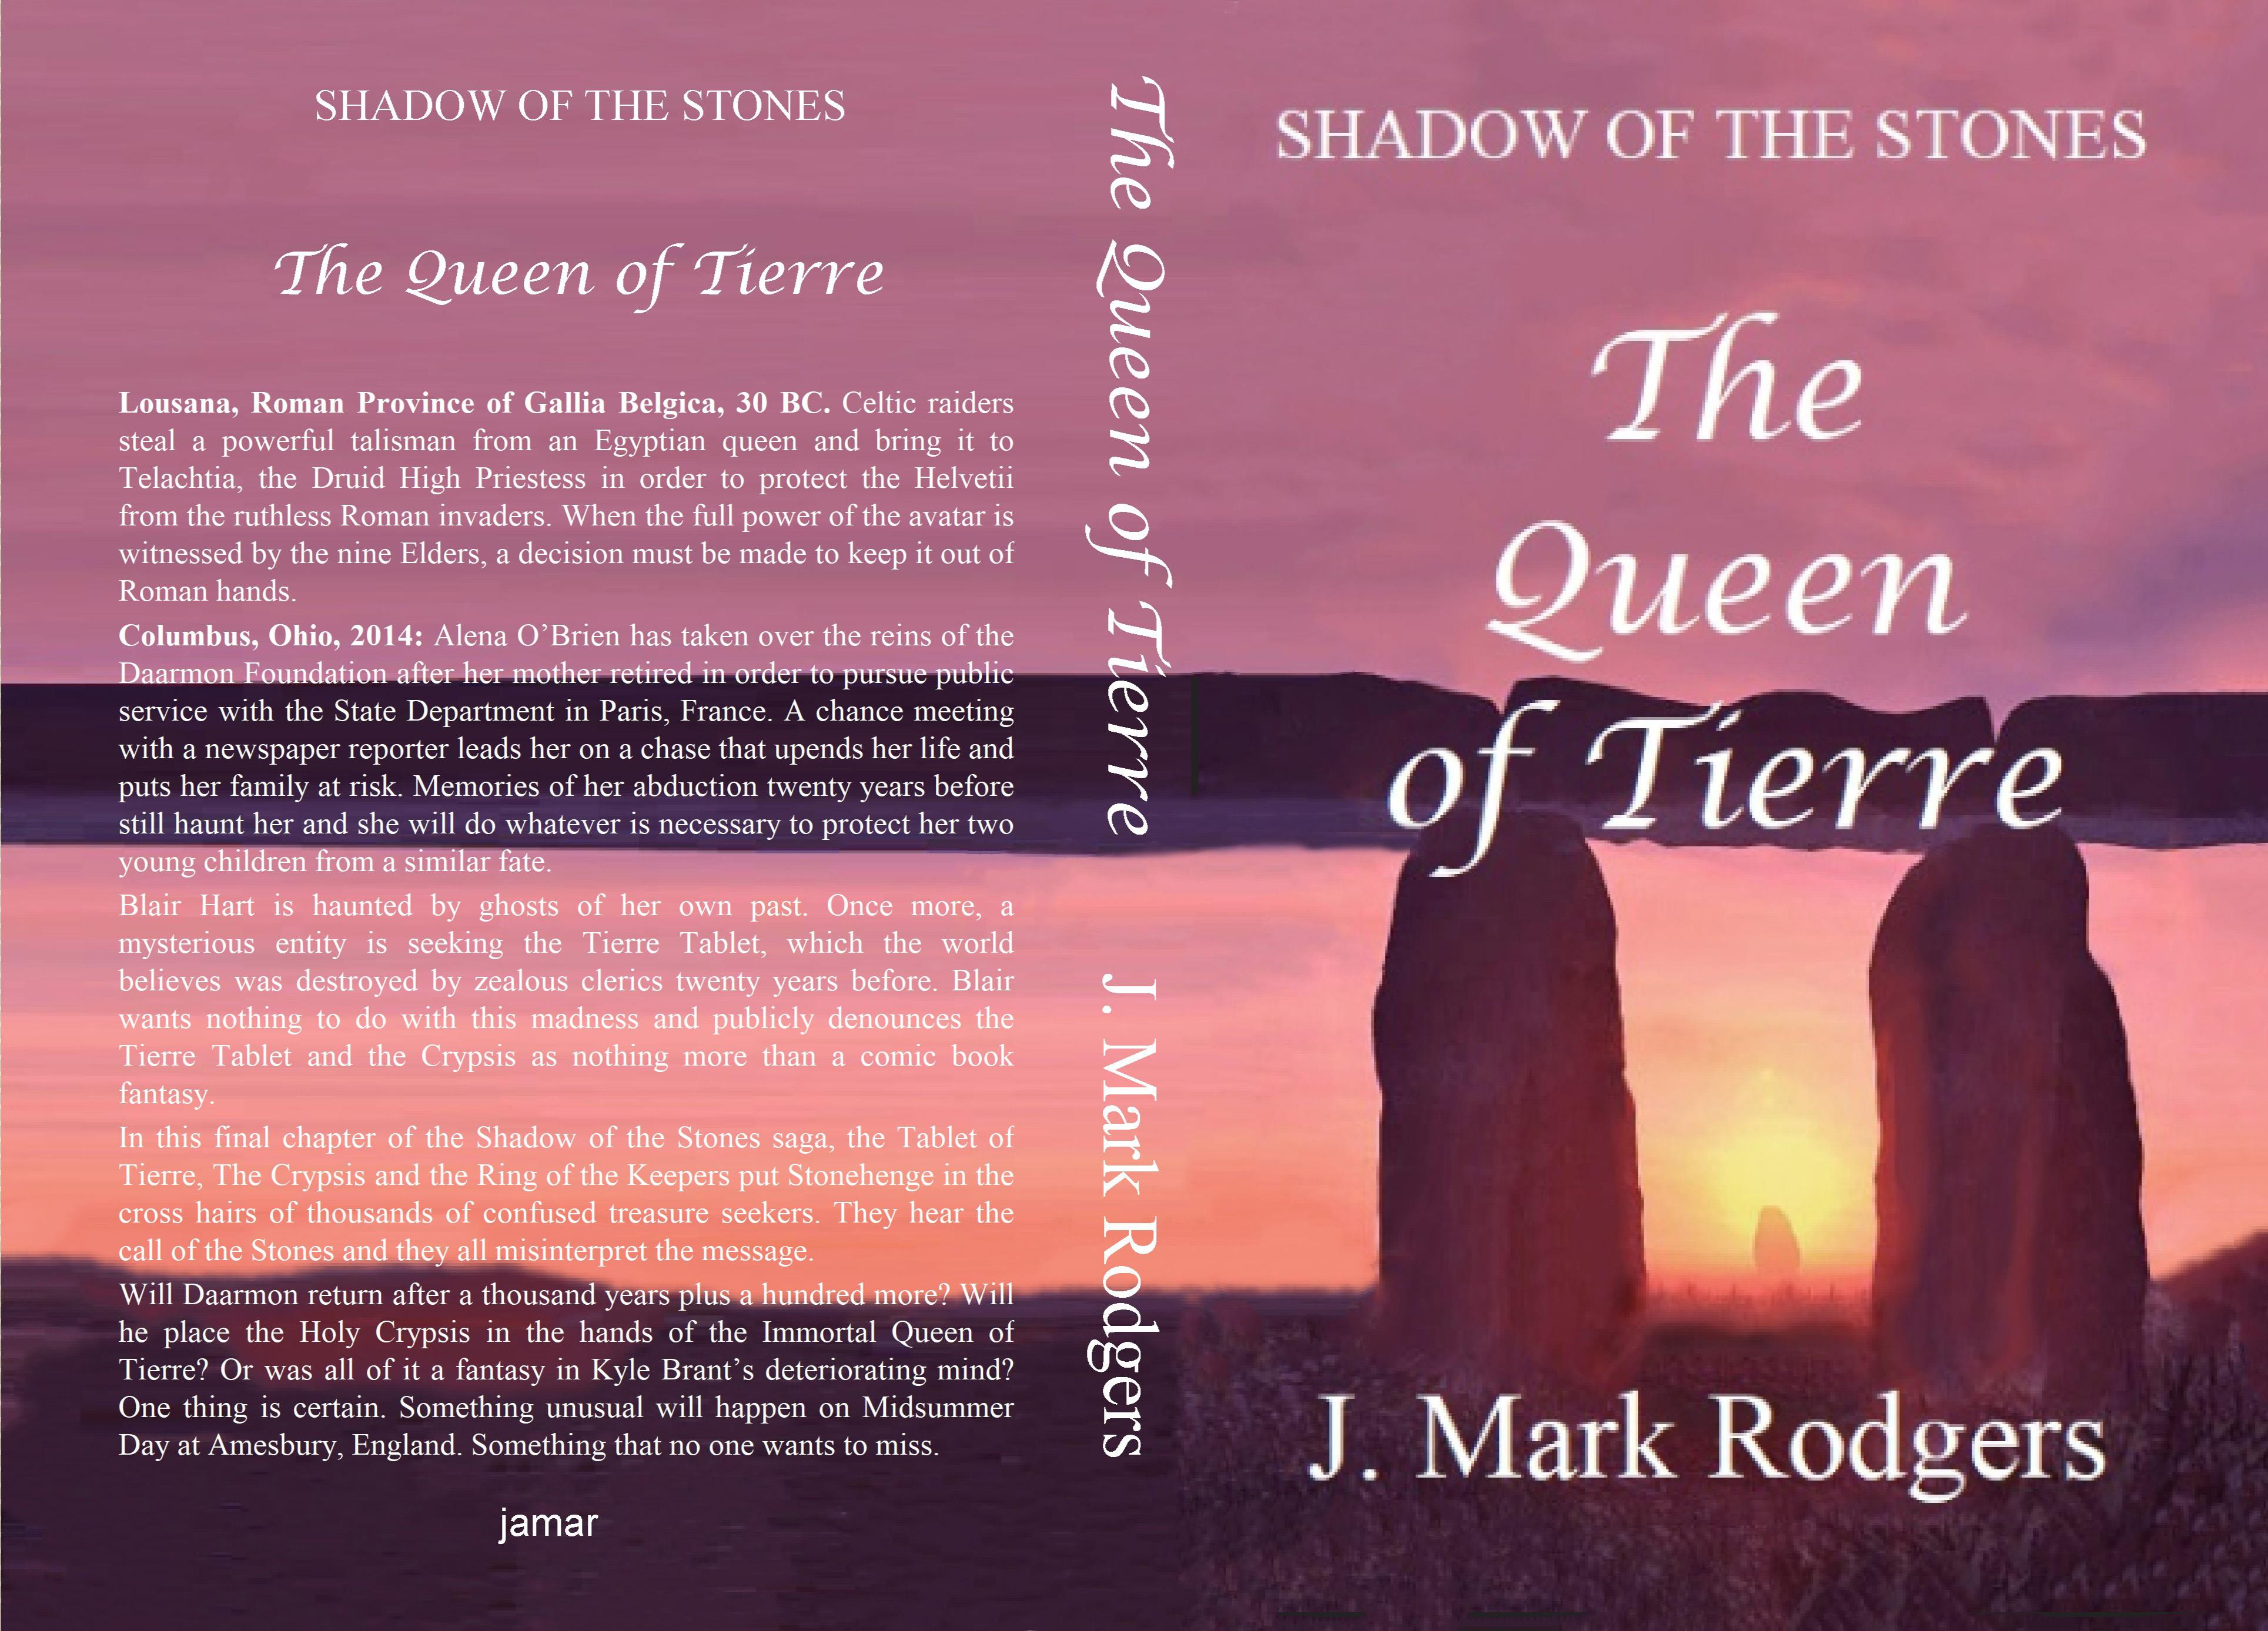 The Queen of Tierre cover image